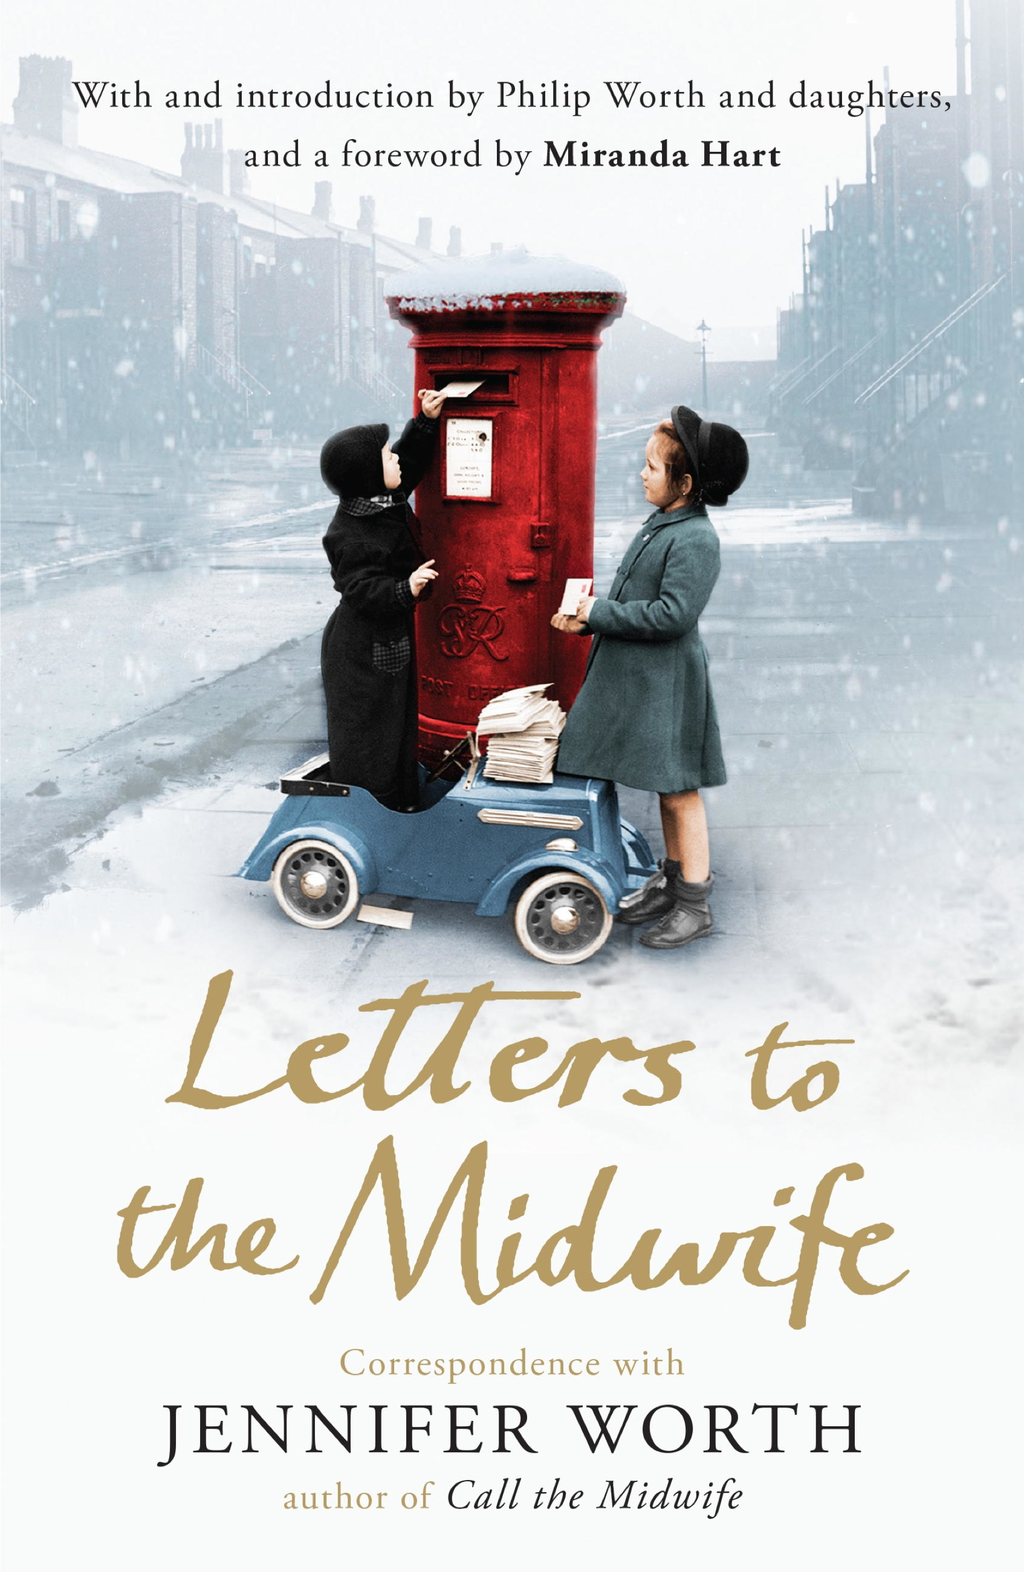 Letters to the Midwife Correspondence with Jennifer Worth,  the Author of Call the Midwife